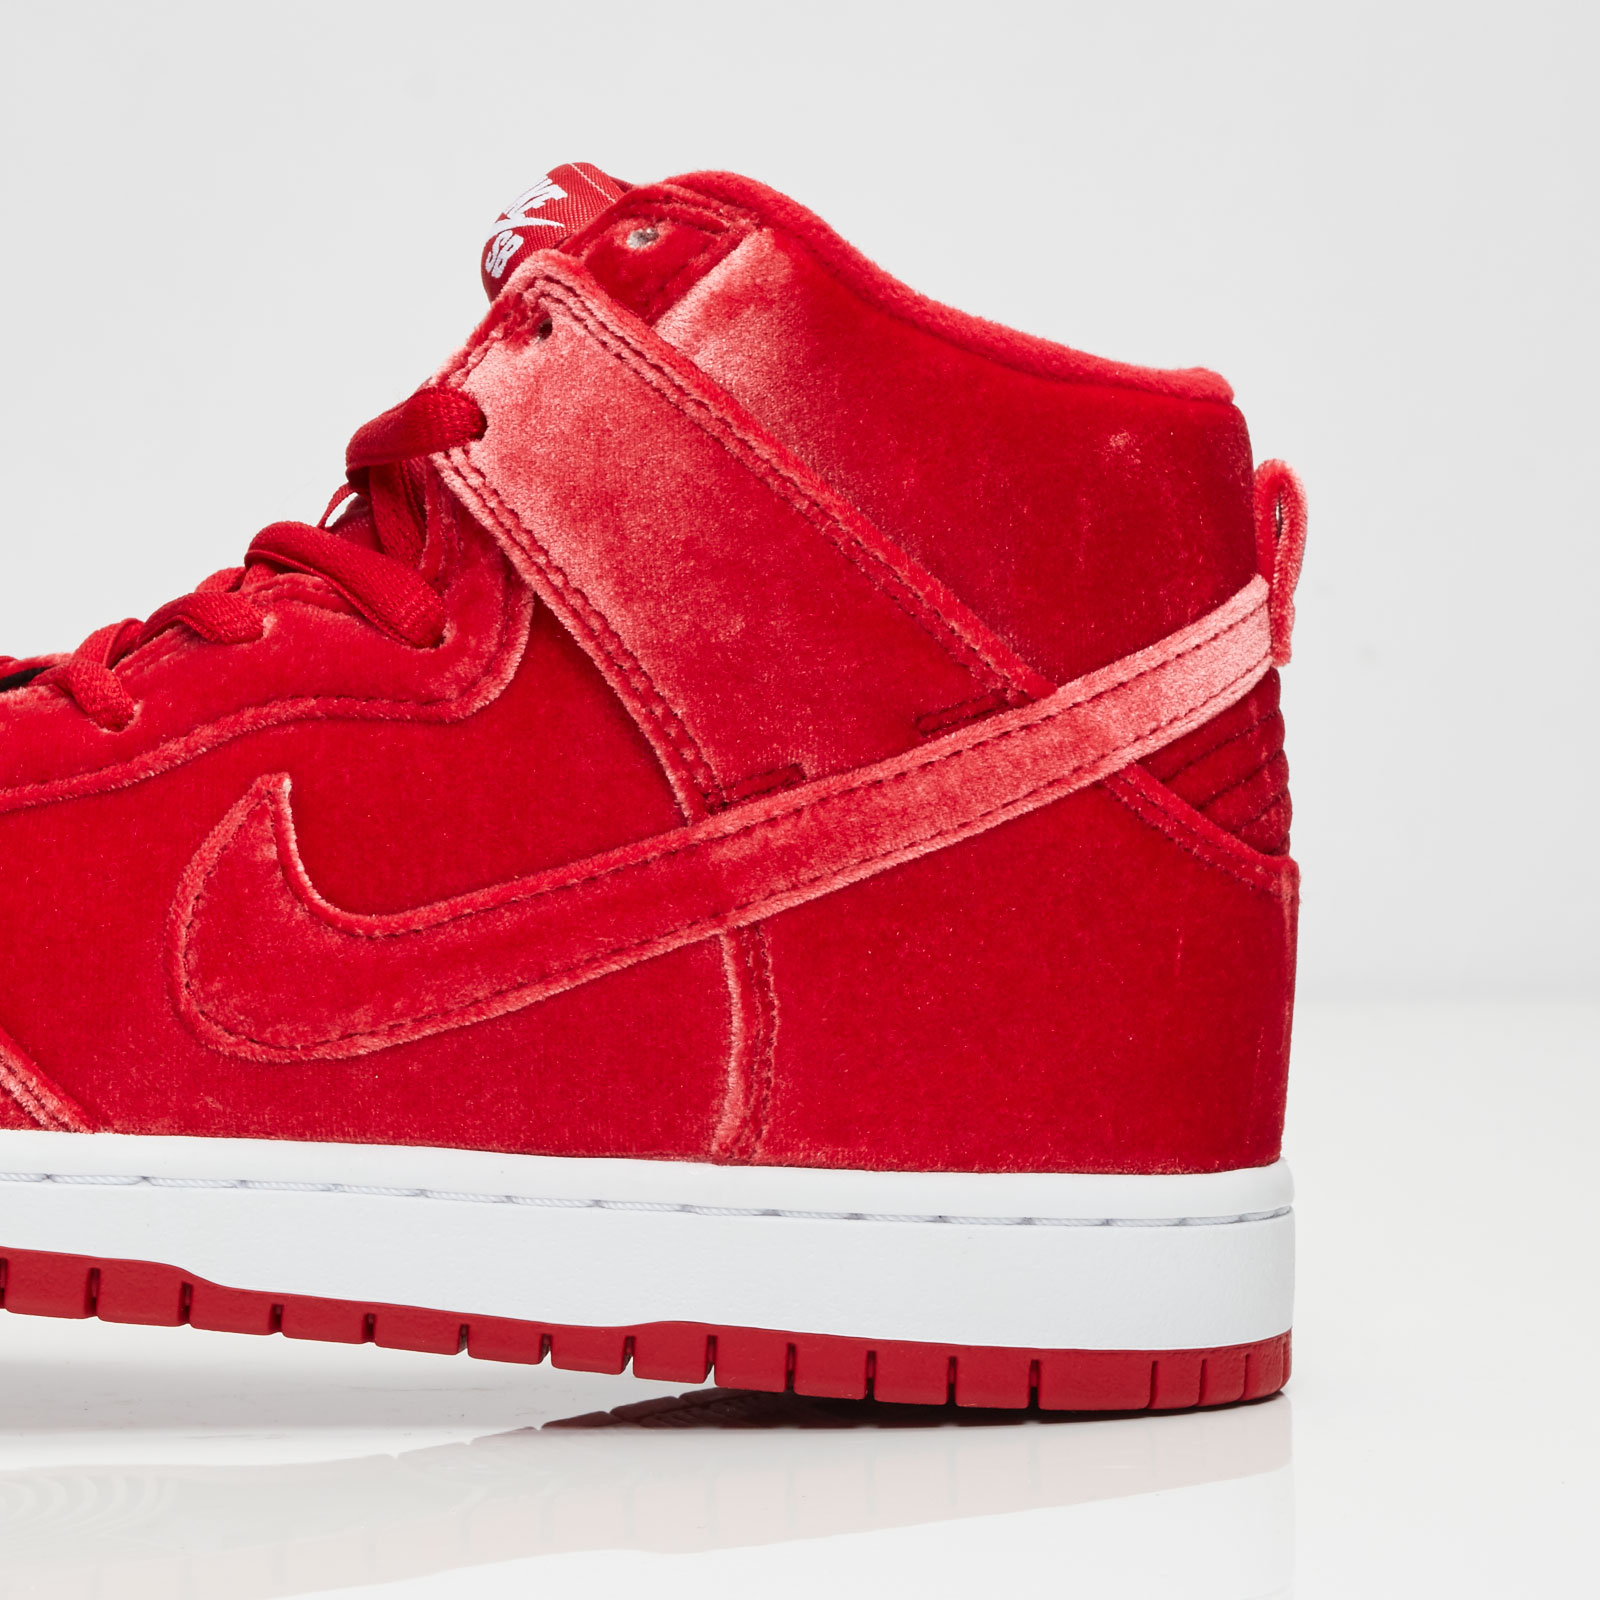 best authentic b713c b60be Nike Dunk High SB Red Velvet - Air 23 - Air Jordan Release Dates,  Foamposite, Air Max, and More